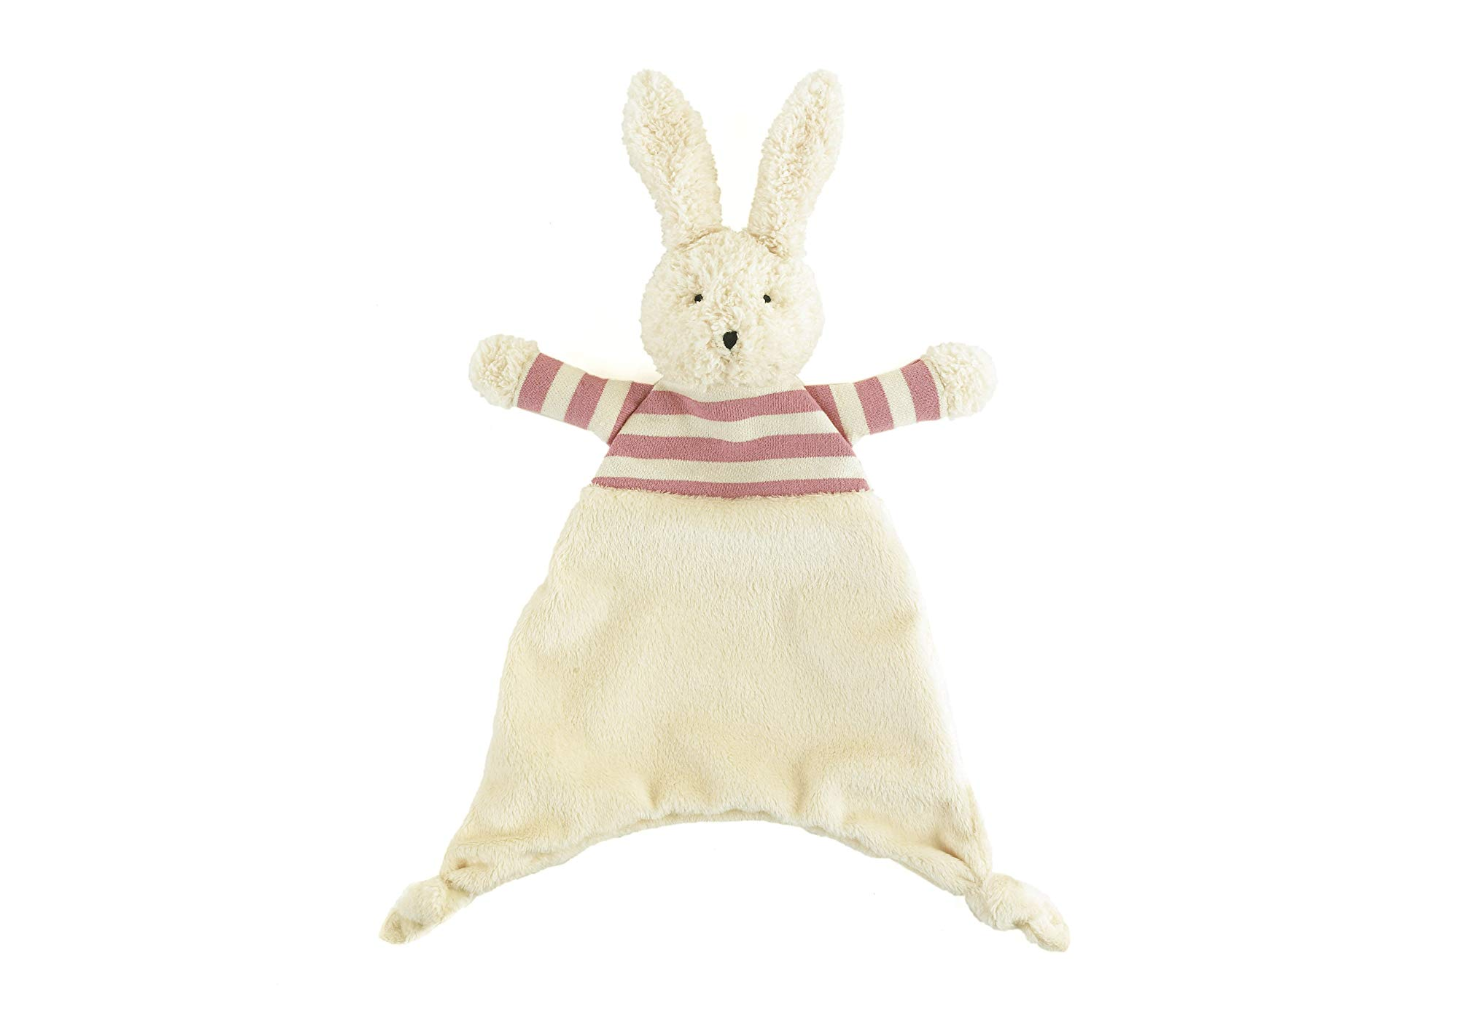 Jellycat Bredita Bunny Soother - Best Baby Toys for 0-6 Months Old